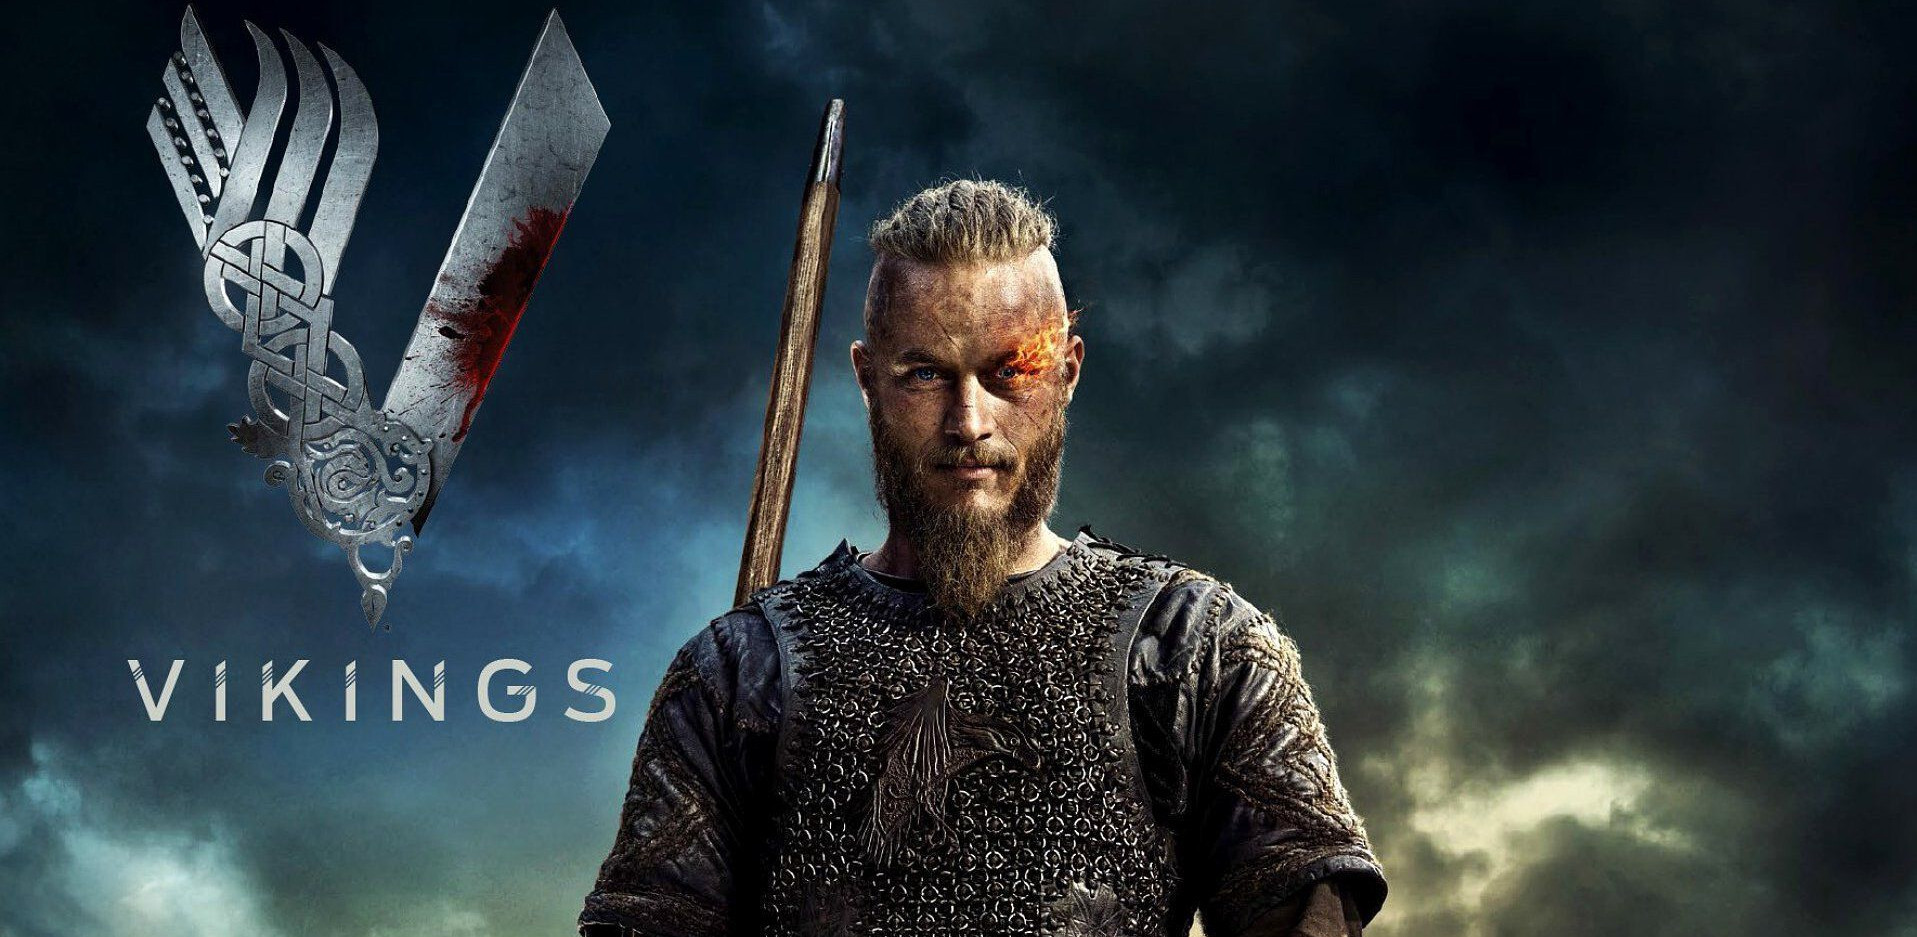 vikings mobile game based on the tv series coming to android and ios